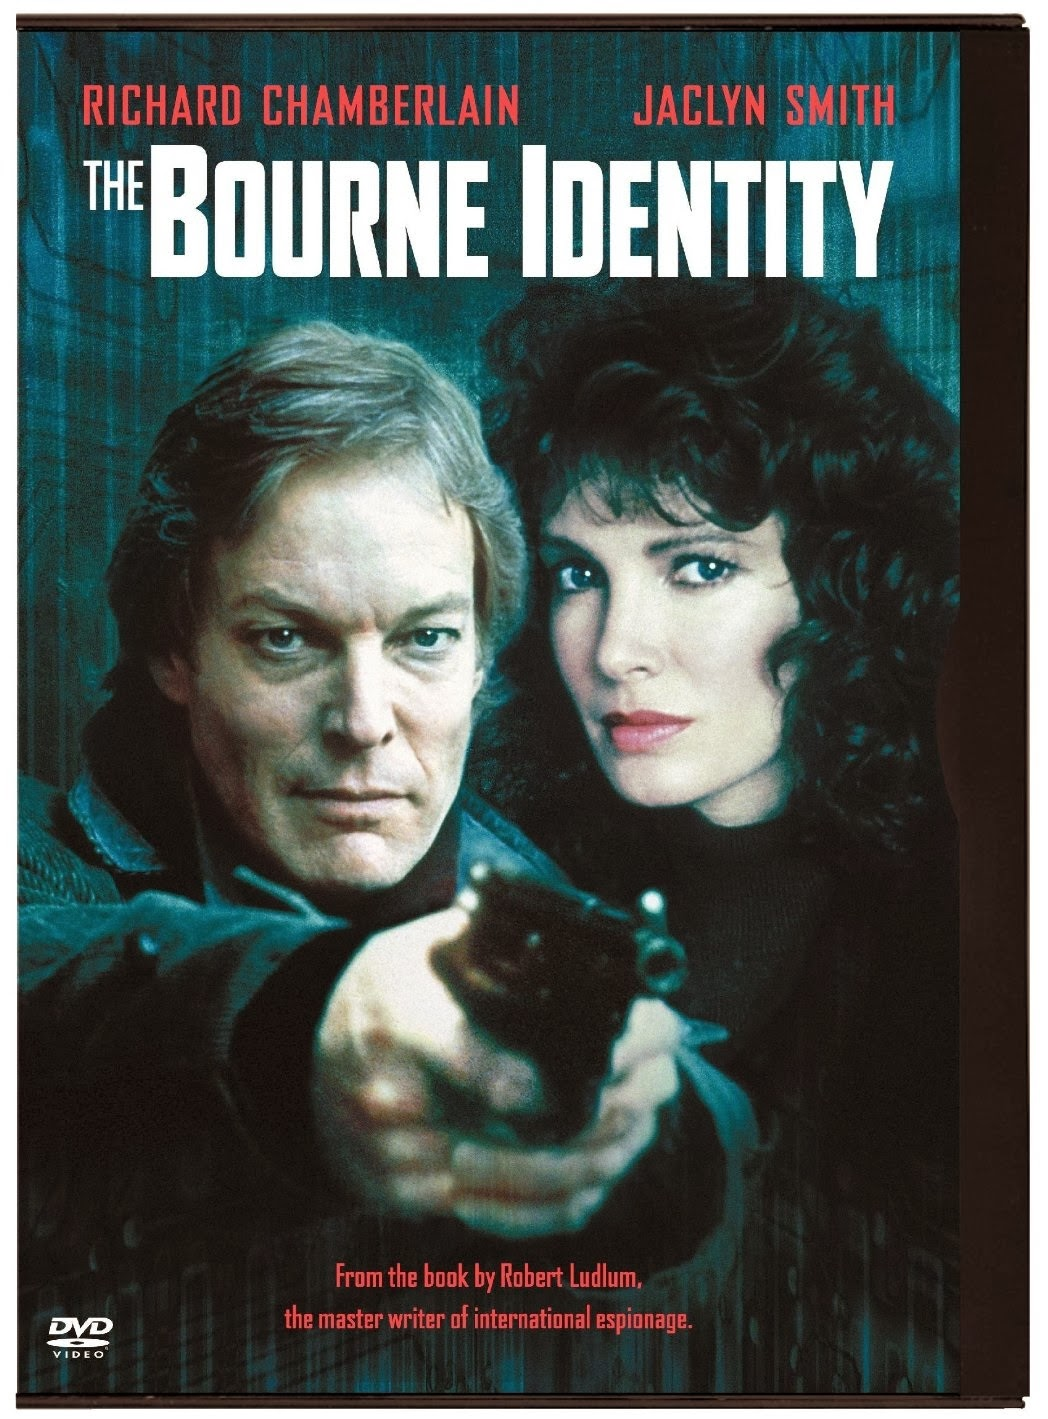 the bourne identity book review The bourne identity was an edge of your seat thriller that was better than i expected good characters, good direction, good acting, bourne identity is a surprise hit however, please use discernment when deciding whether or not to see it since some of the content isn't for everyone.